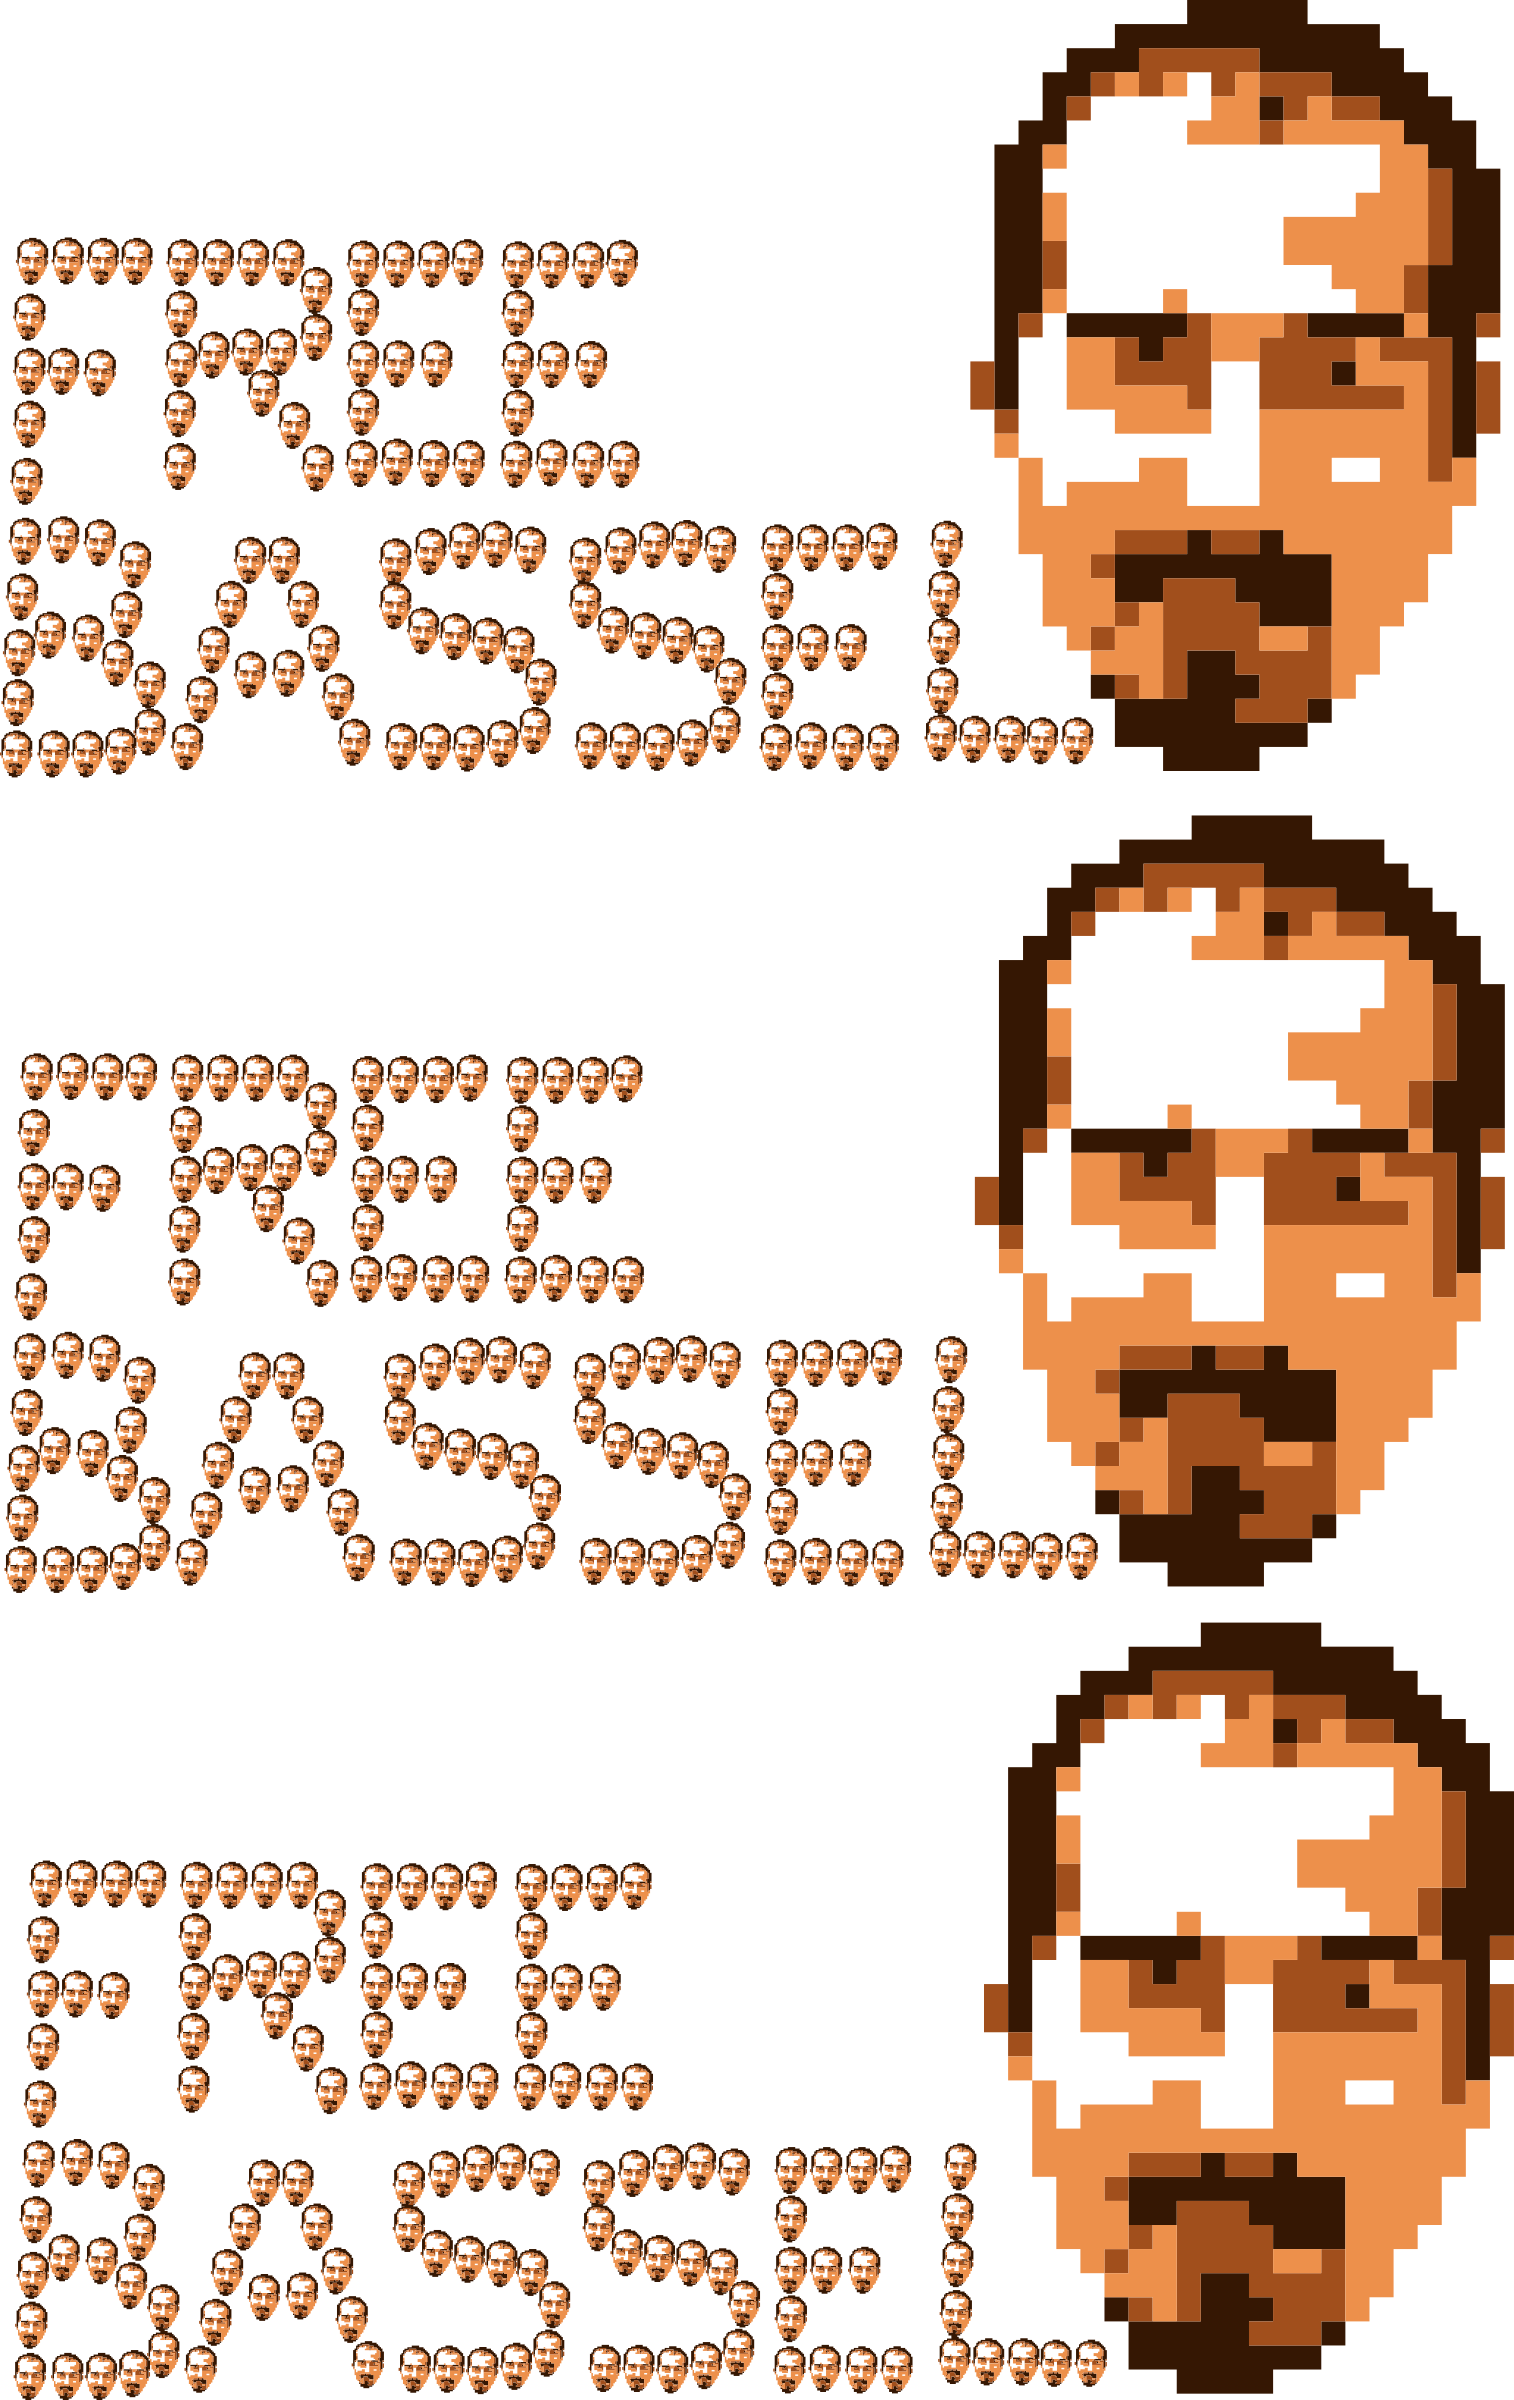 Freebassel 2014 8BIT 3heads  by jykhui